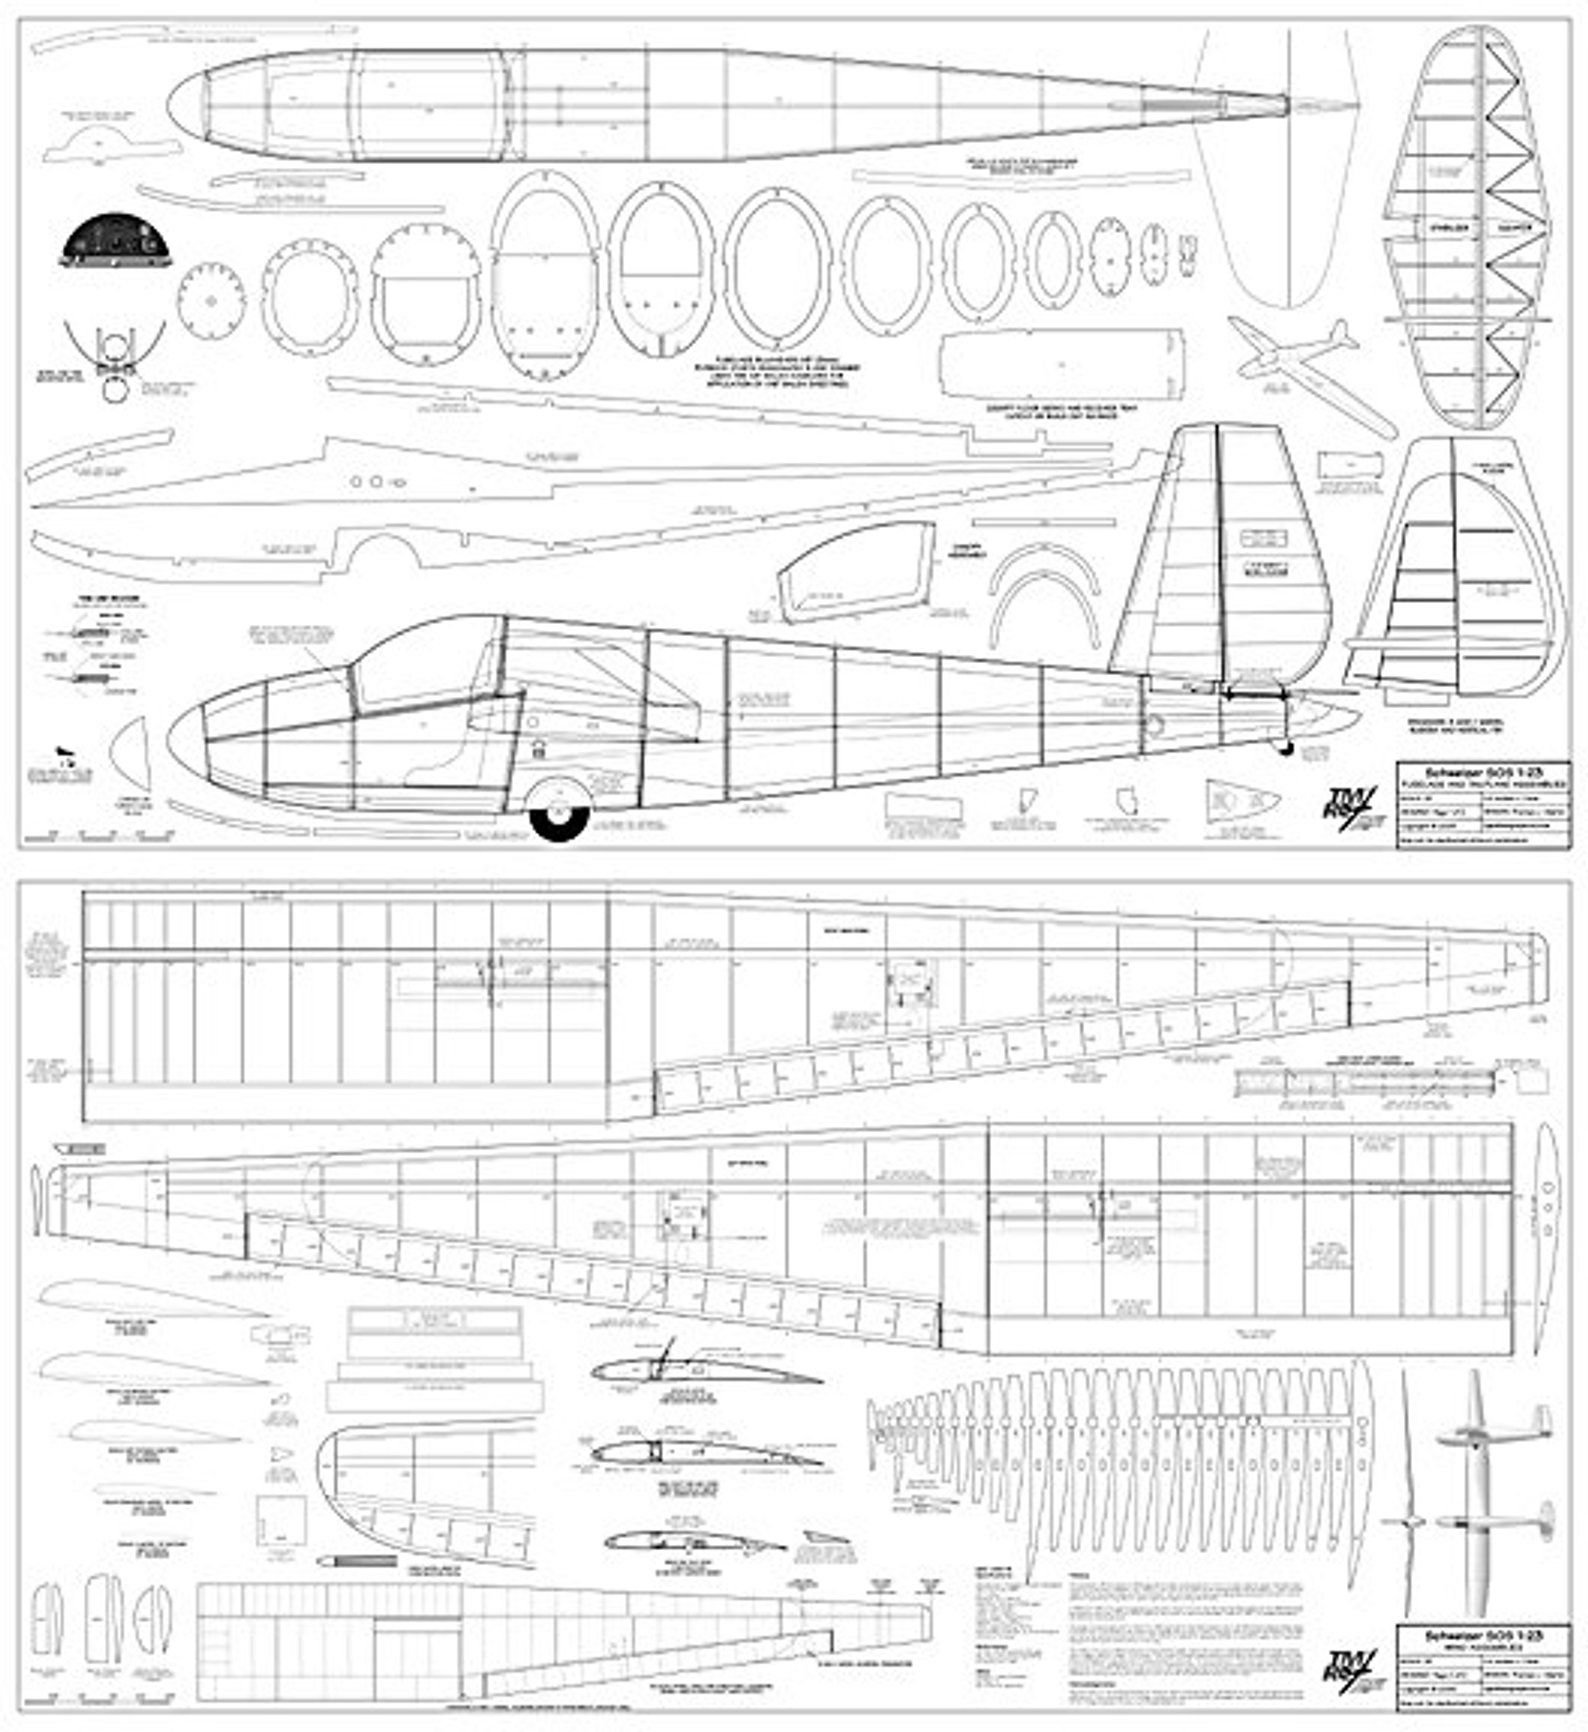 Plans Plywood Balsa 1 5 Scale Sgs 1 23 Schweizer Sailplane Etsy In 2020 Model Planes How To Plan Boat Plans